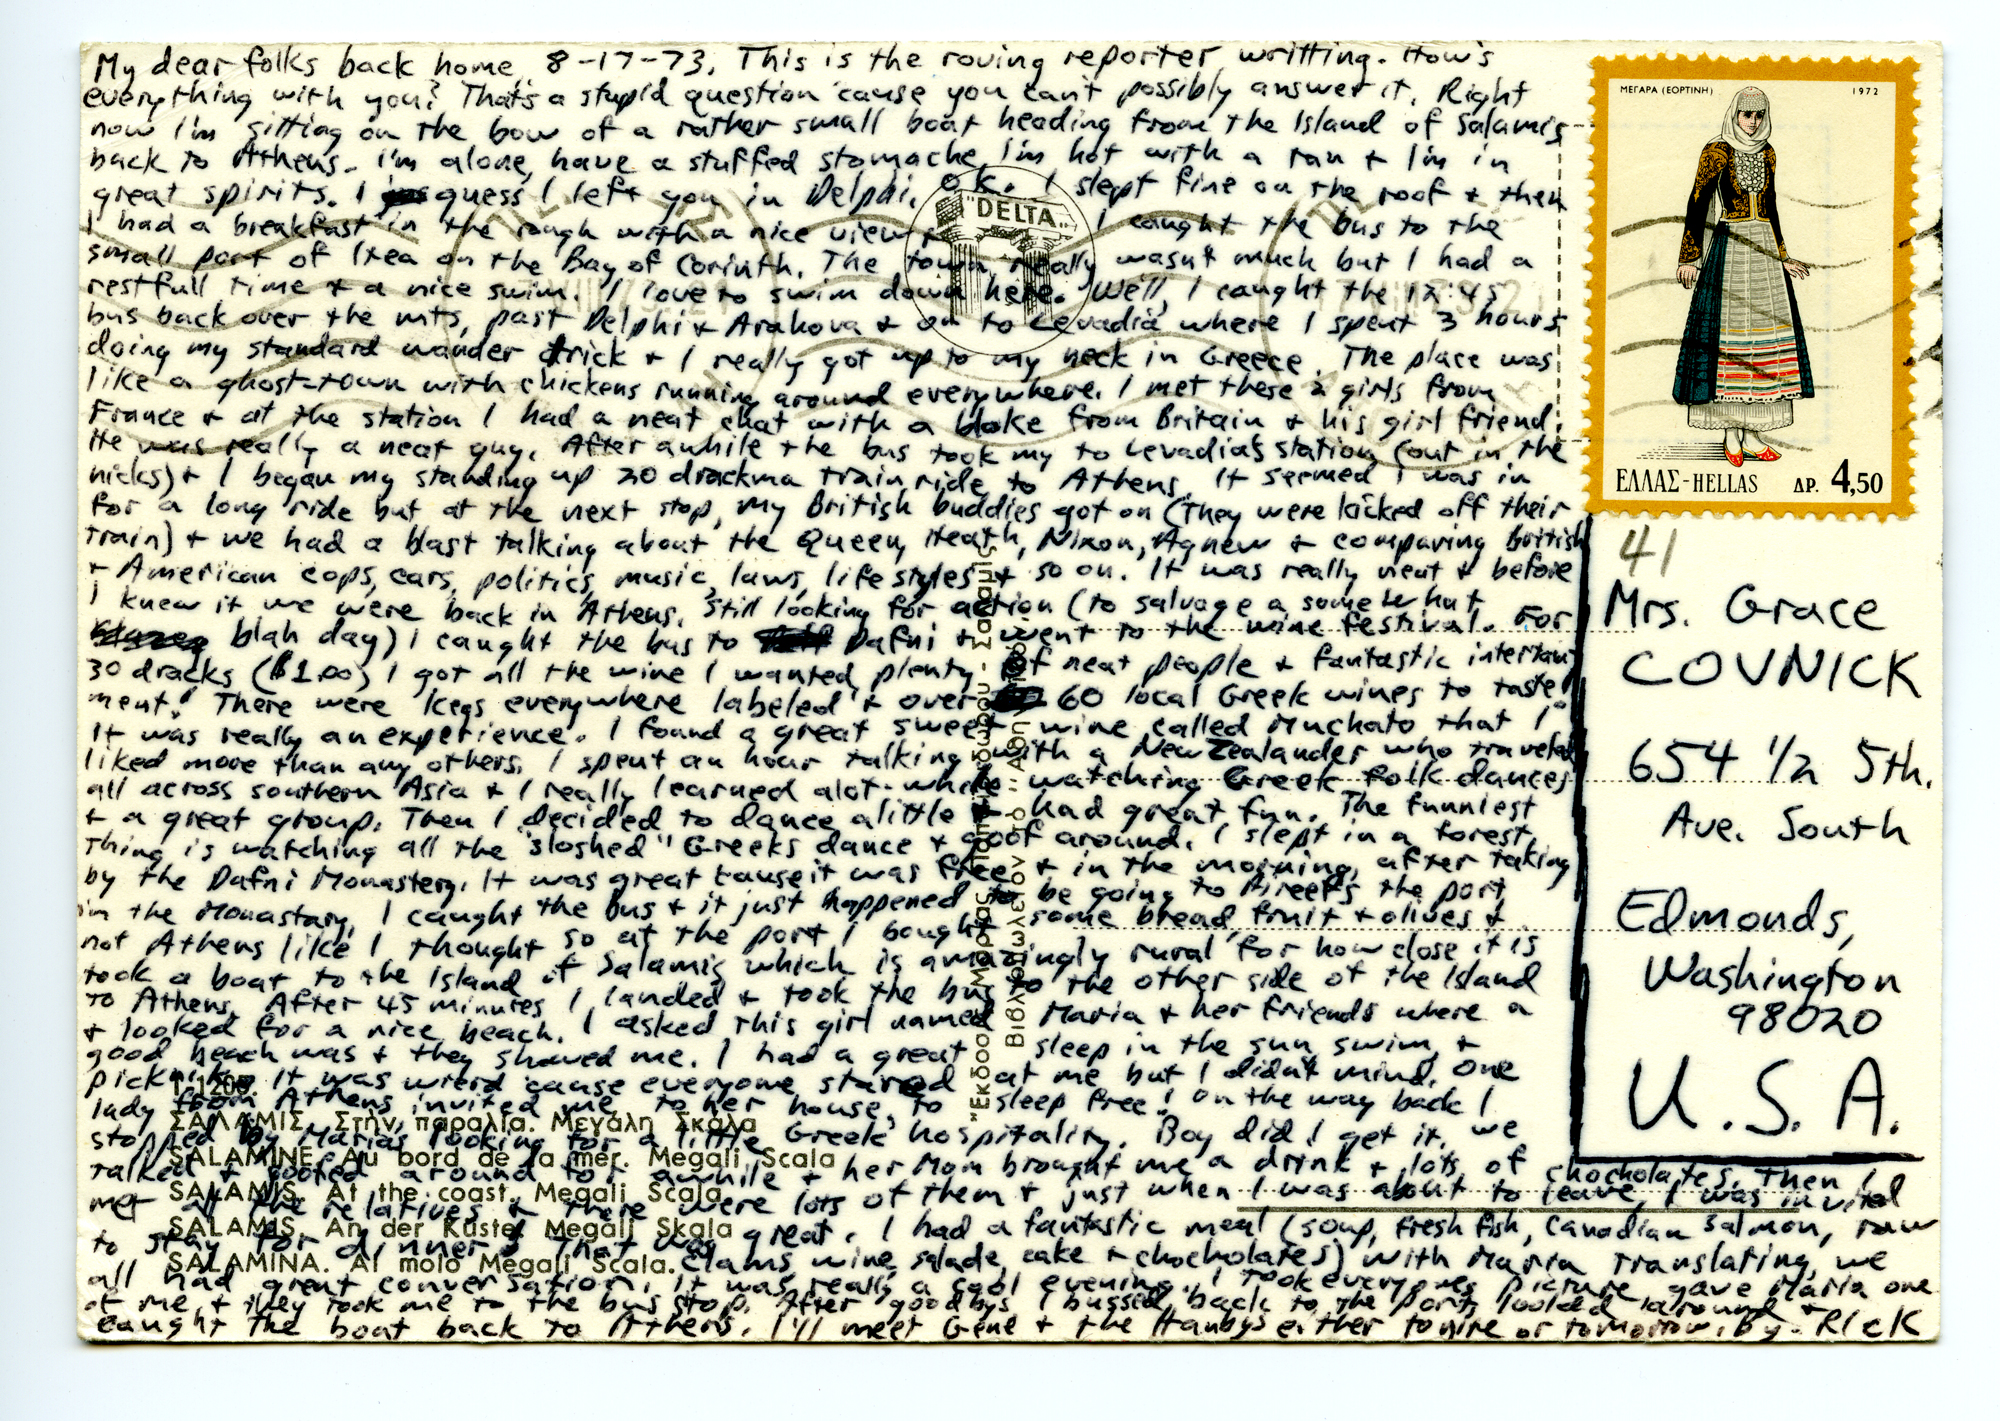 Rick Steves 1973 postcard from Athens